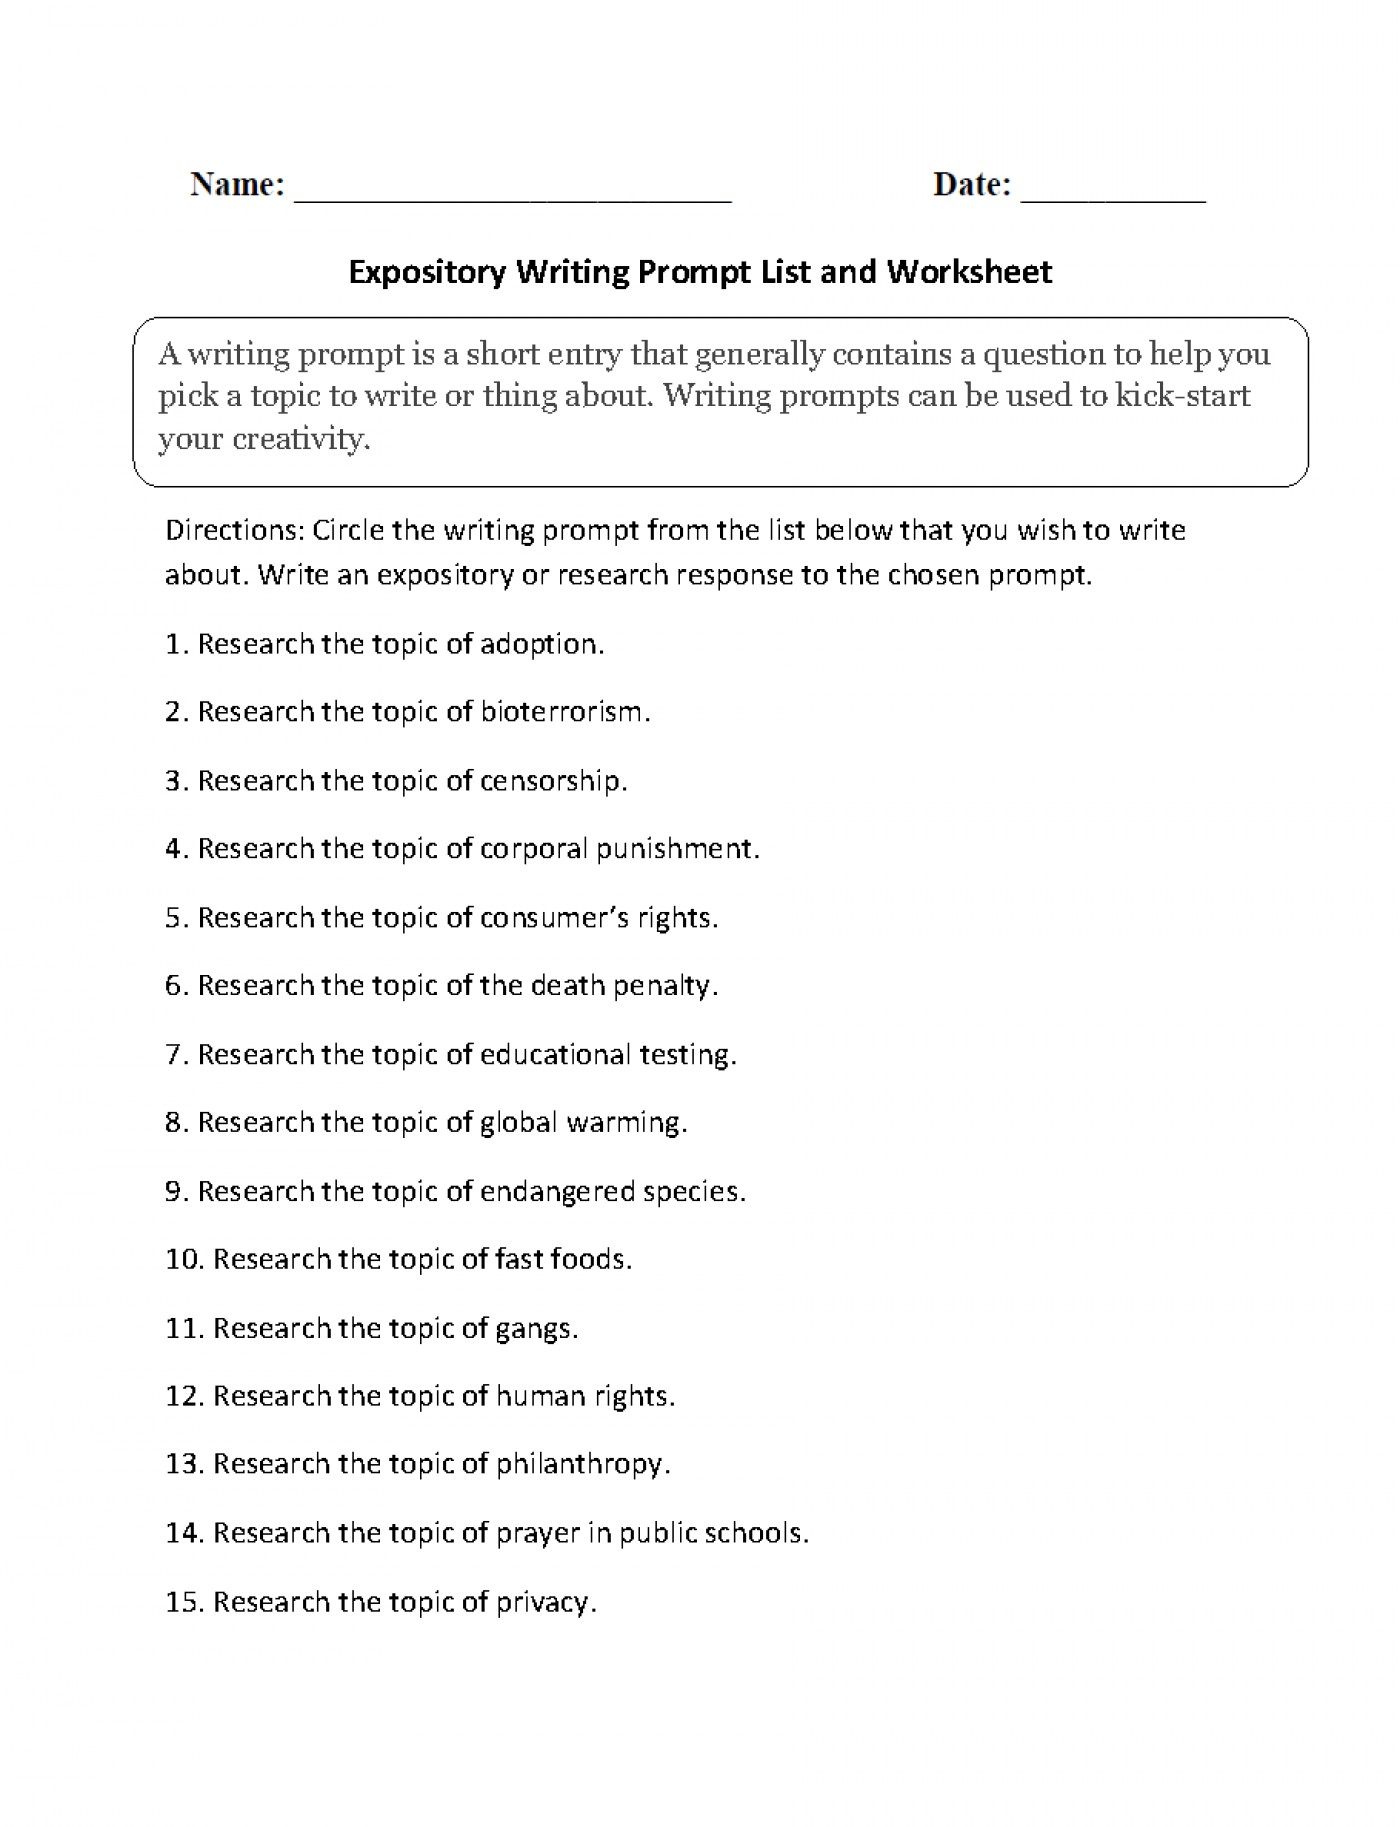 002 Essay Example Expository Topics List Fascinating Explanatory Informative For College High School Prompt 4th Grade 1400